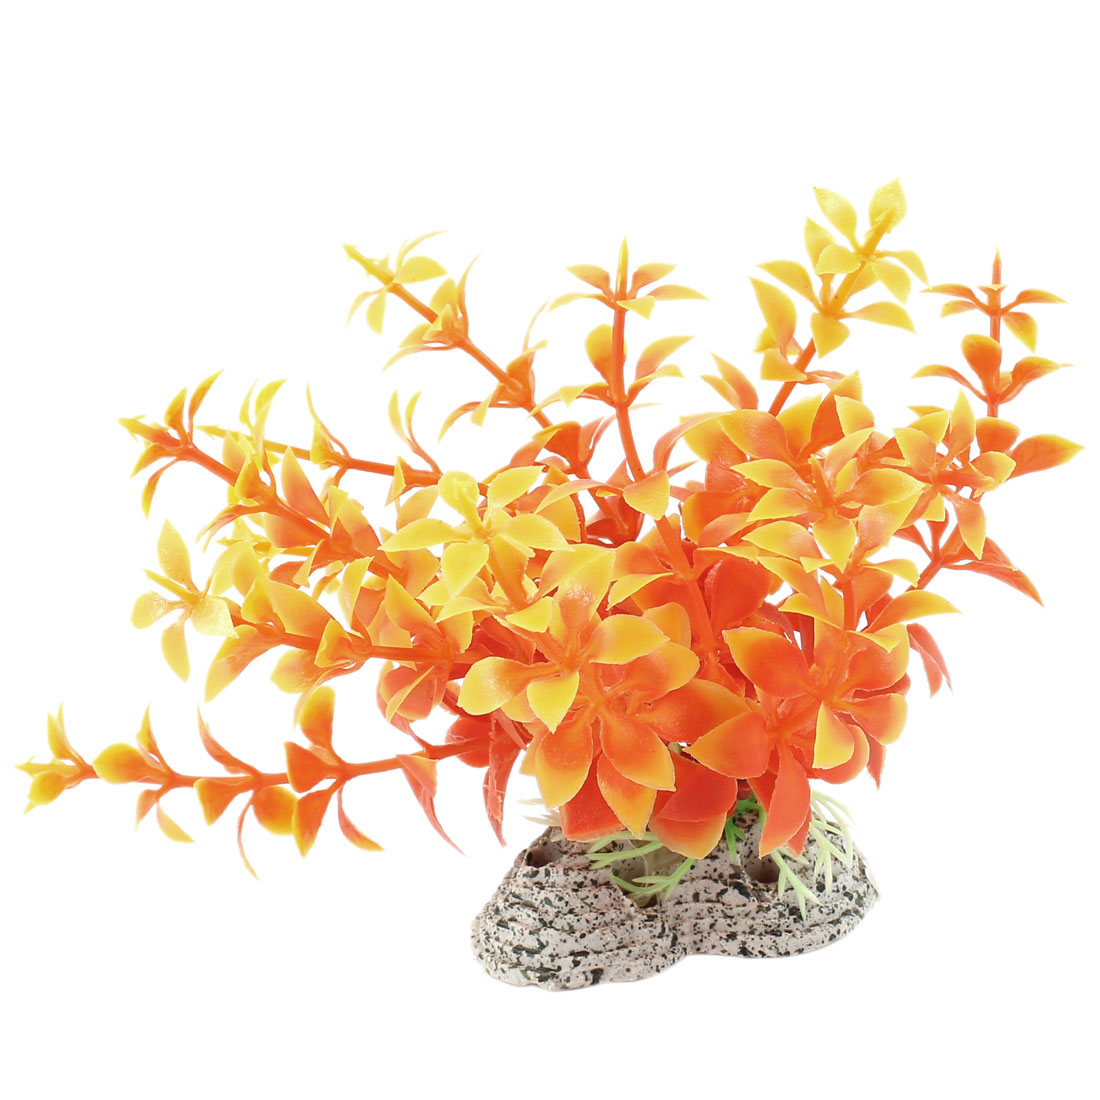 "Aquarium Aquascaping Decor Simulated Plastic Aquatic Plant Orange 4.3"" Height"